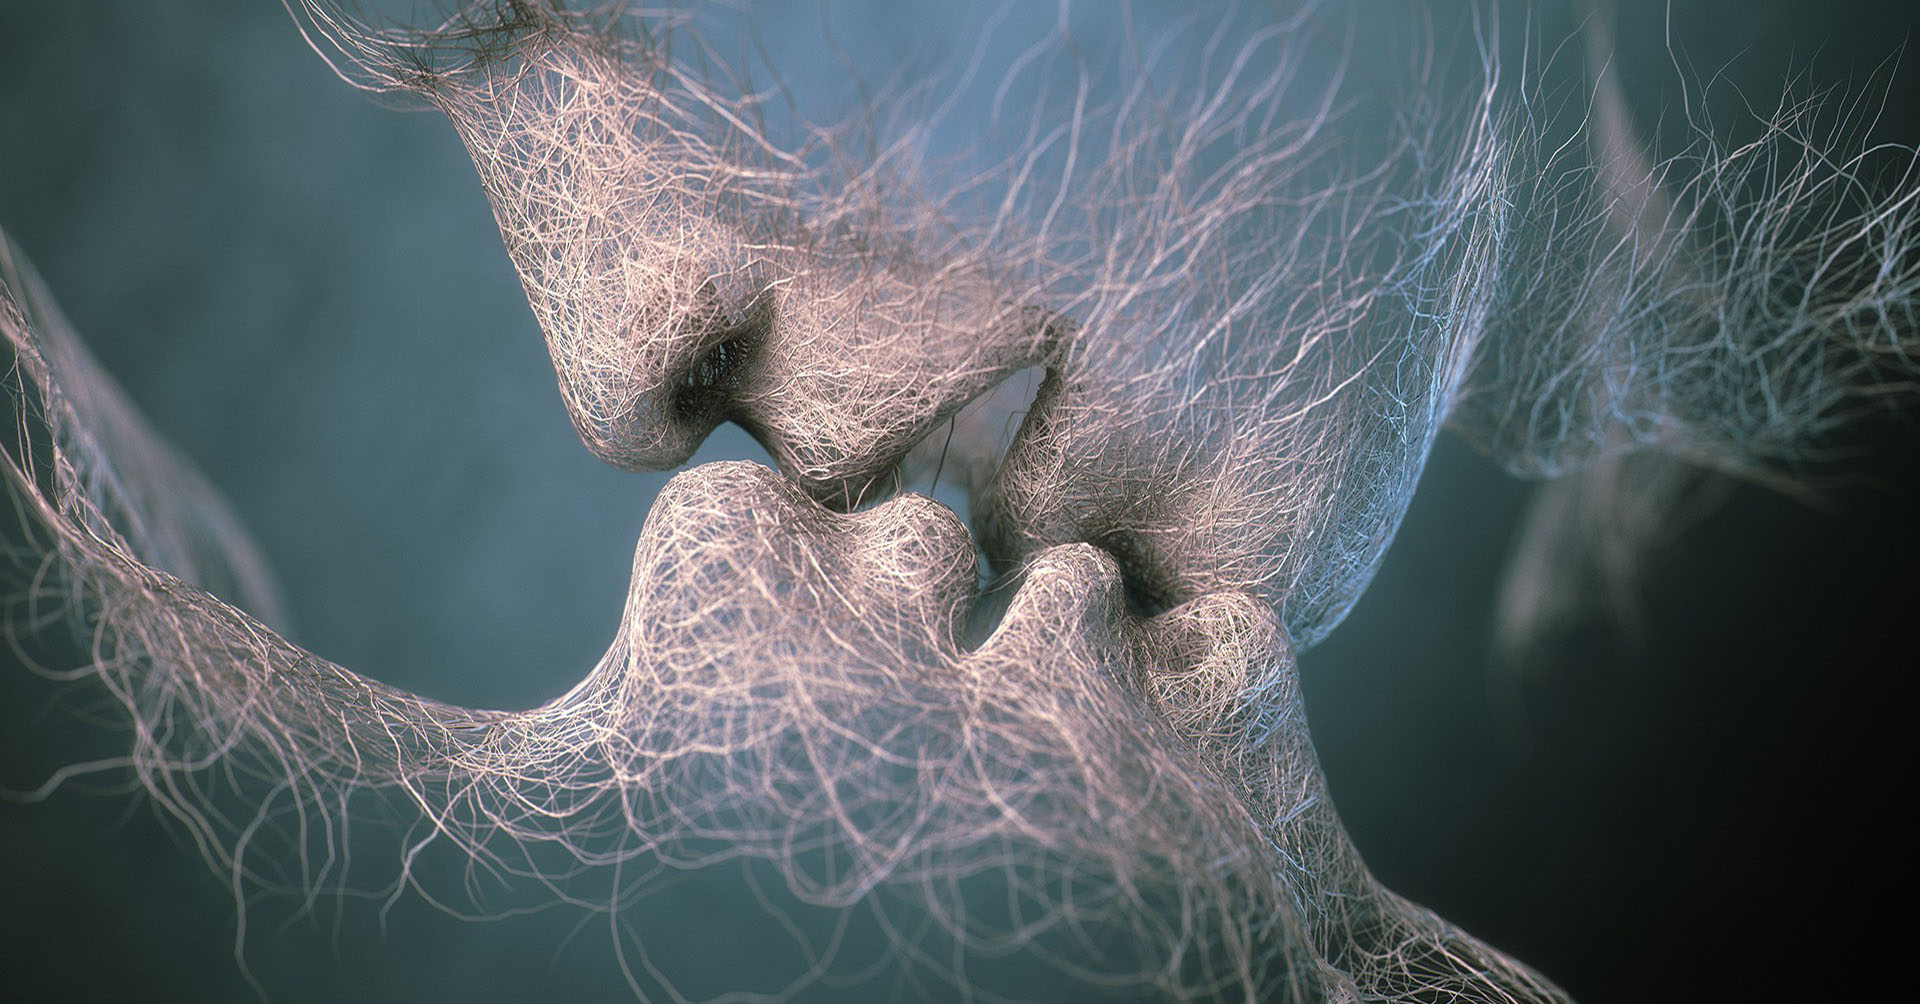 3d Couple Kissing Wallpapers Kiss Artwork Faces Hairs Wires Love Kissing Wallpapers Hd